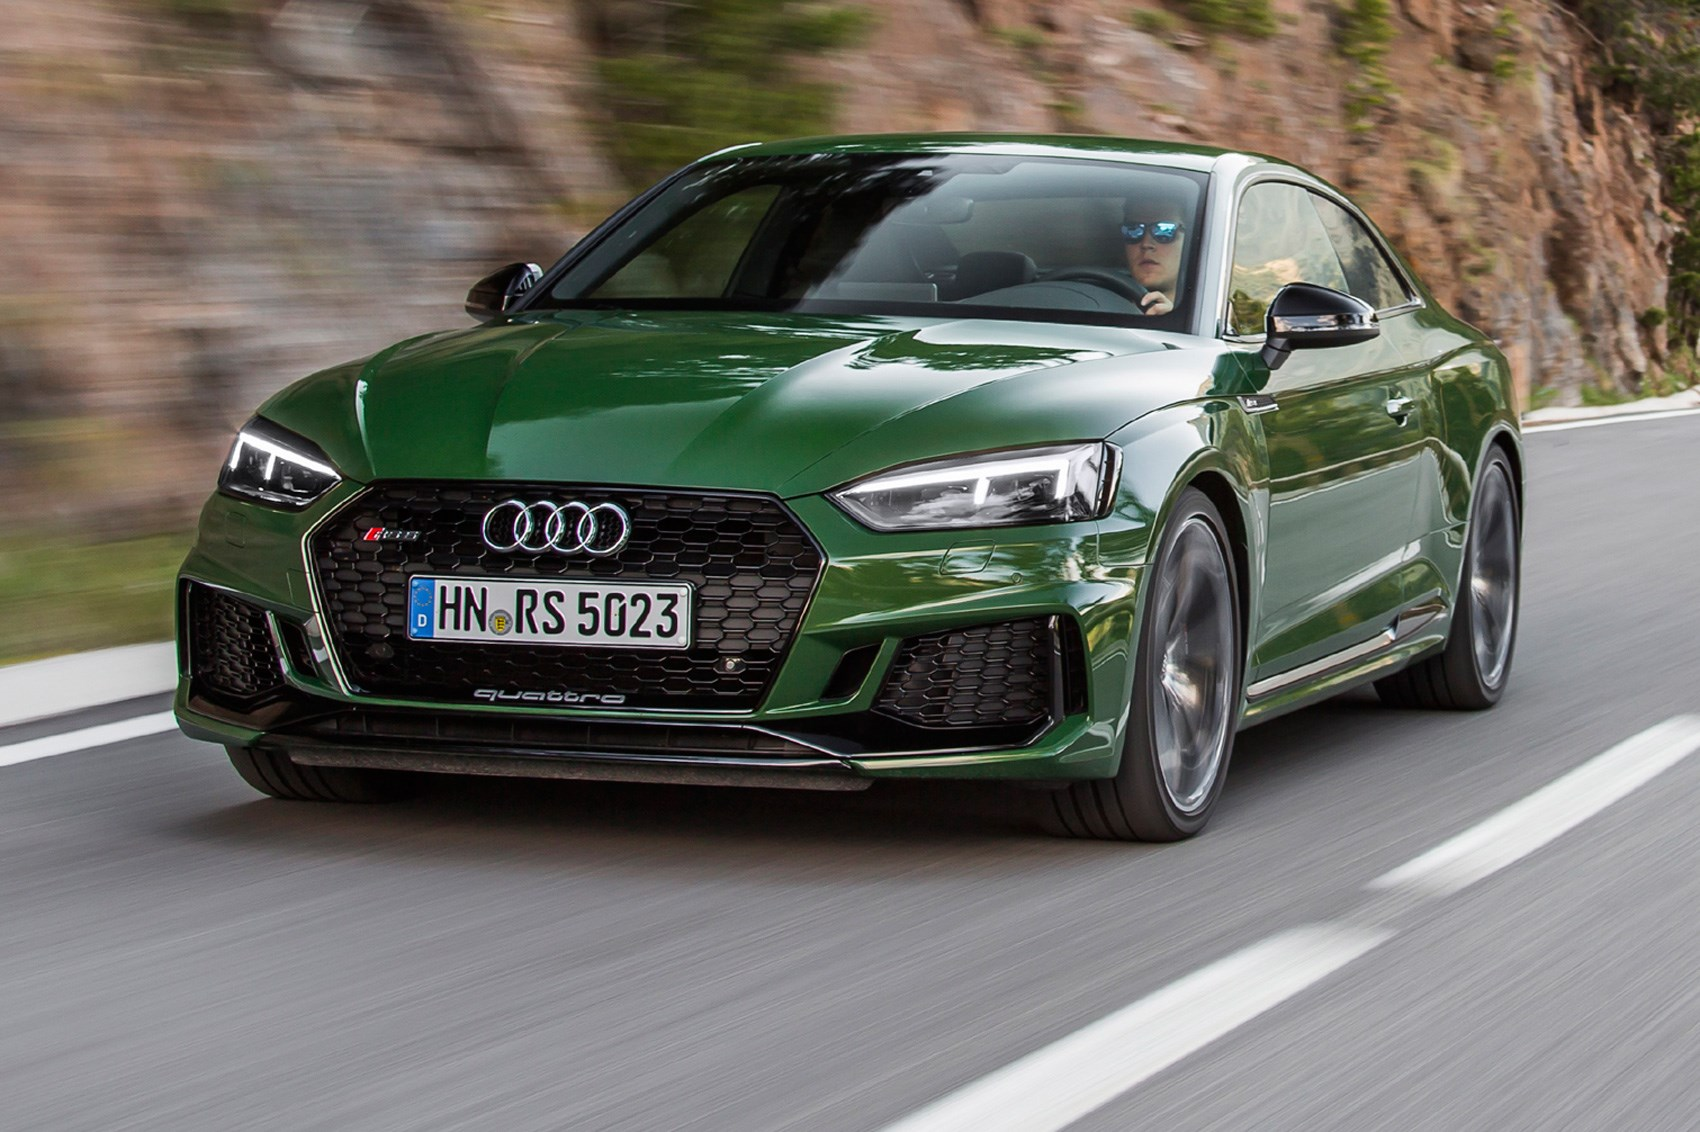 Audi s5 sportback 2017 review by car magazine - Audi Rs5 Coupe 2017 Review